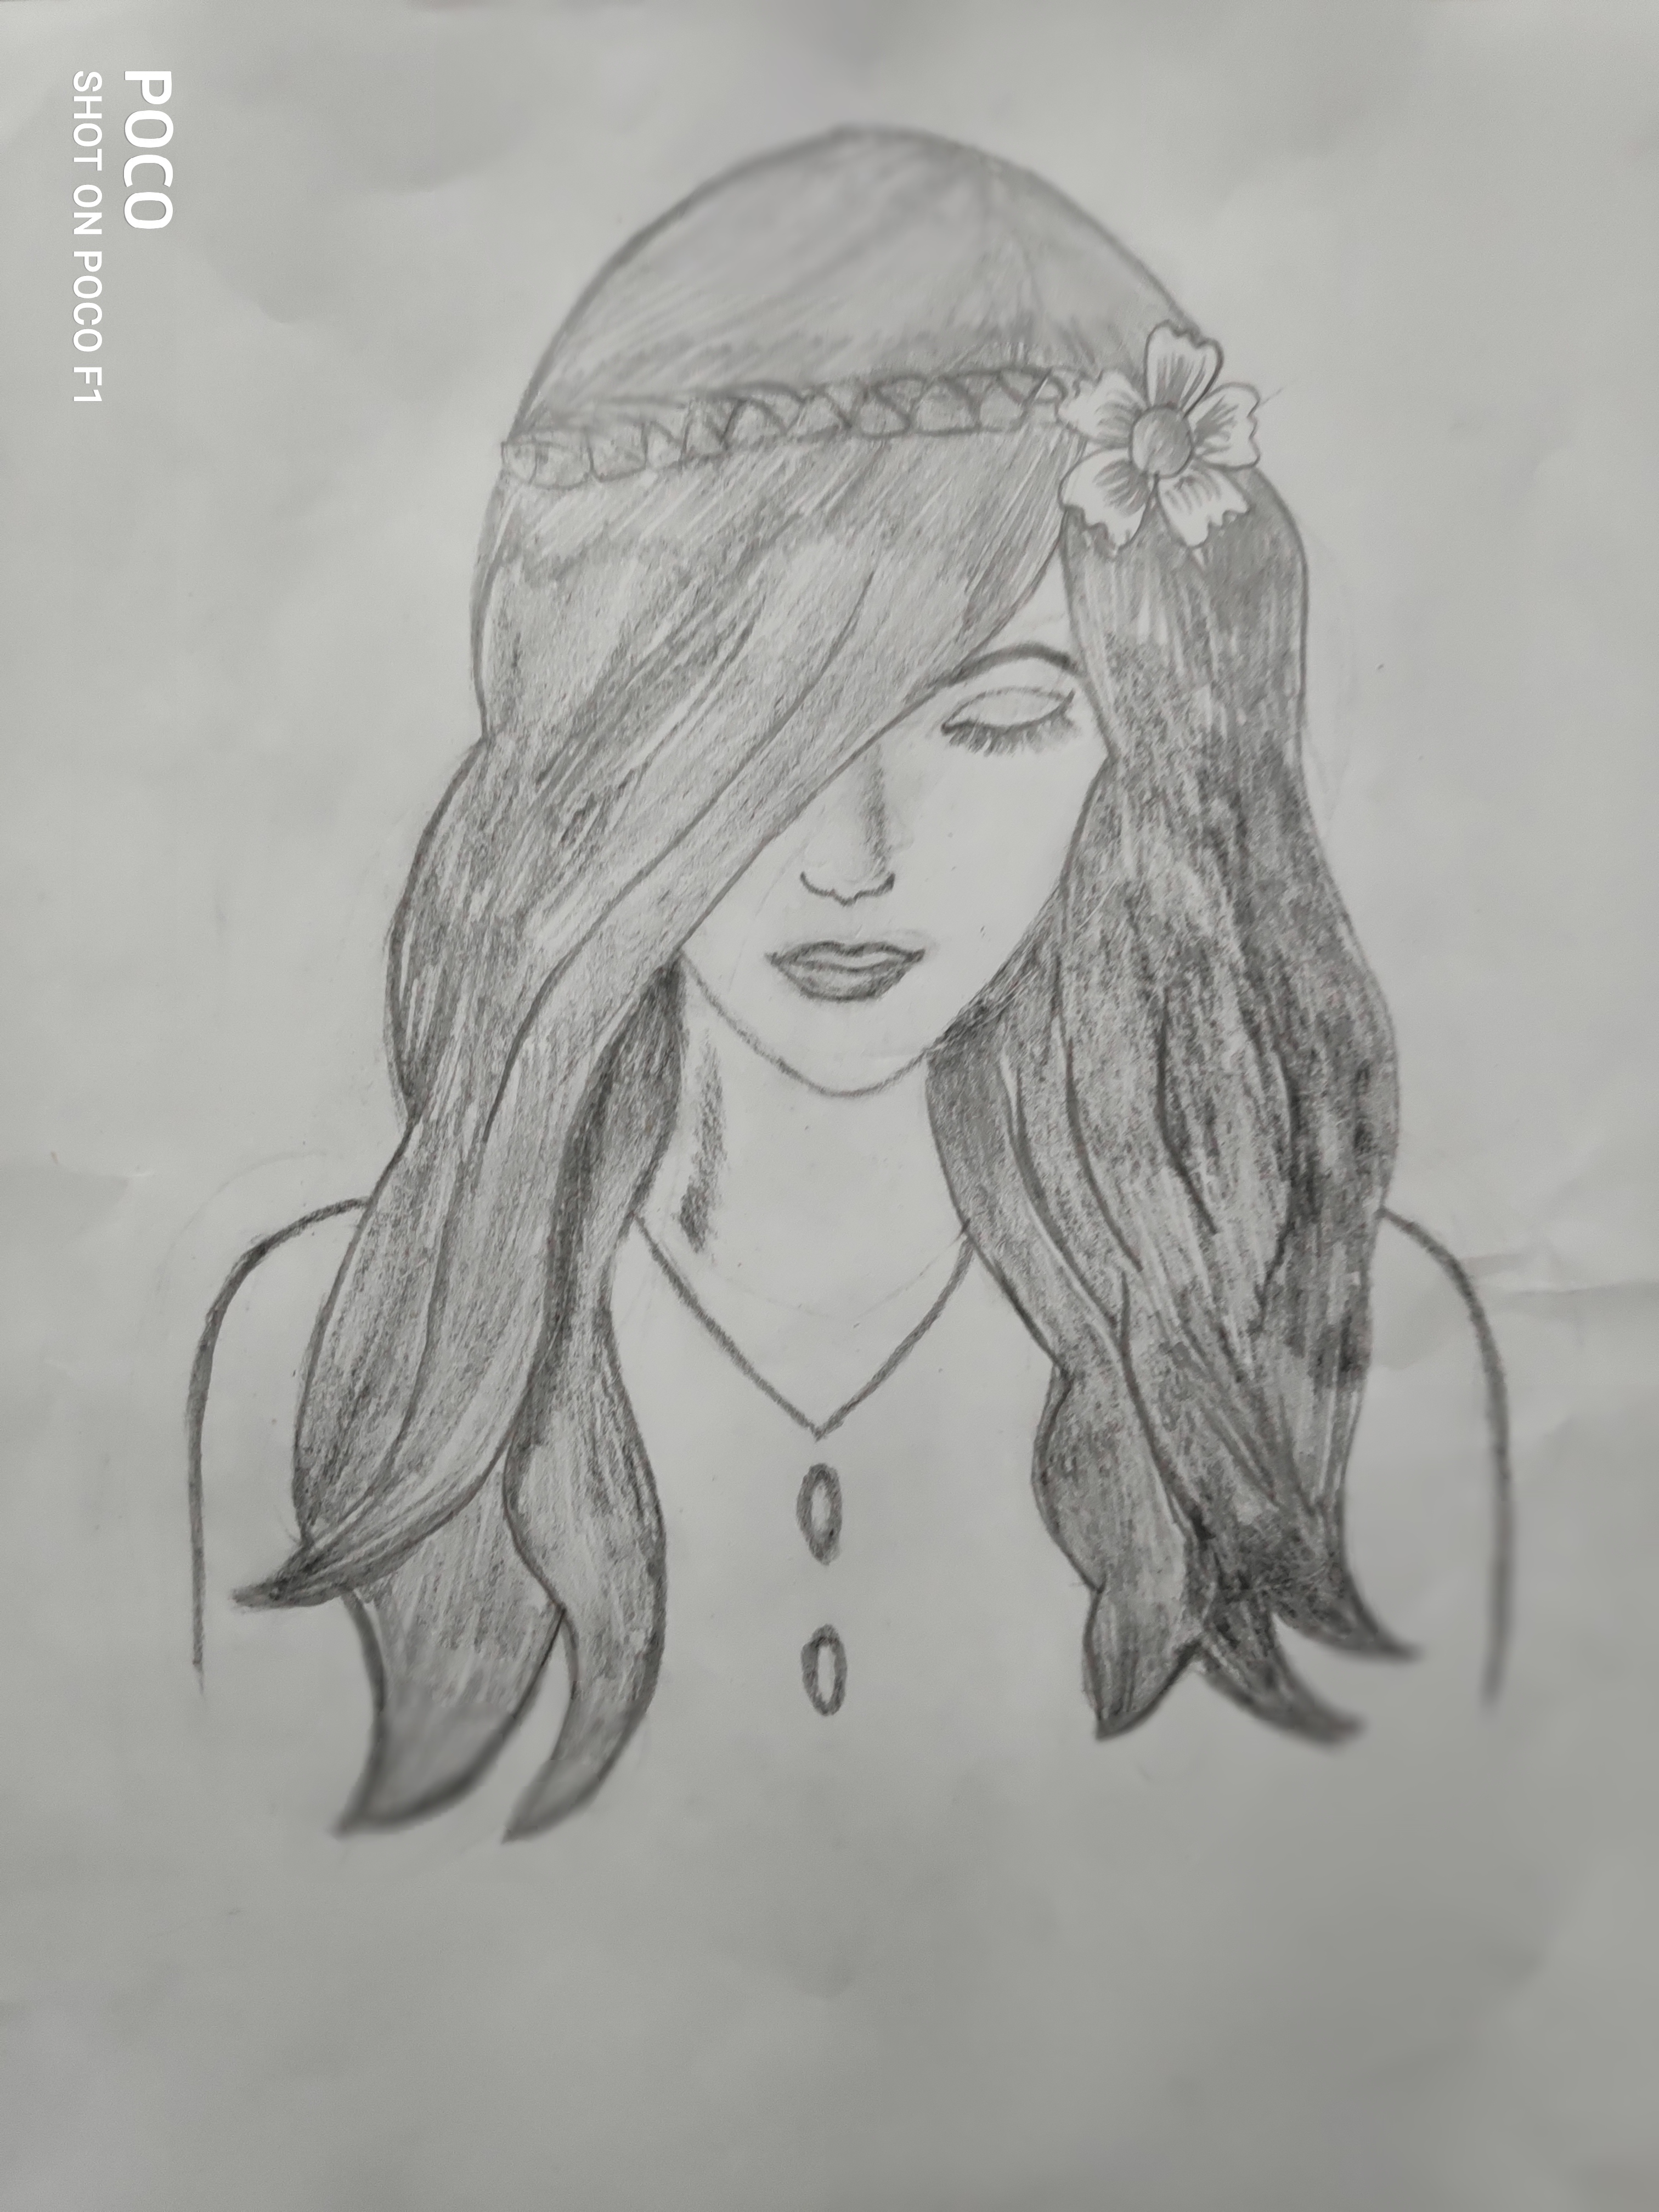 Riddhi's Sketch 'Beauty in Simplicity'